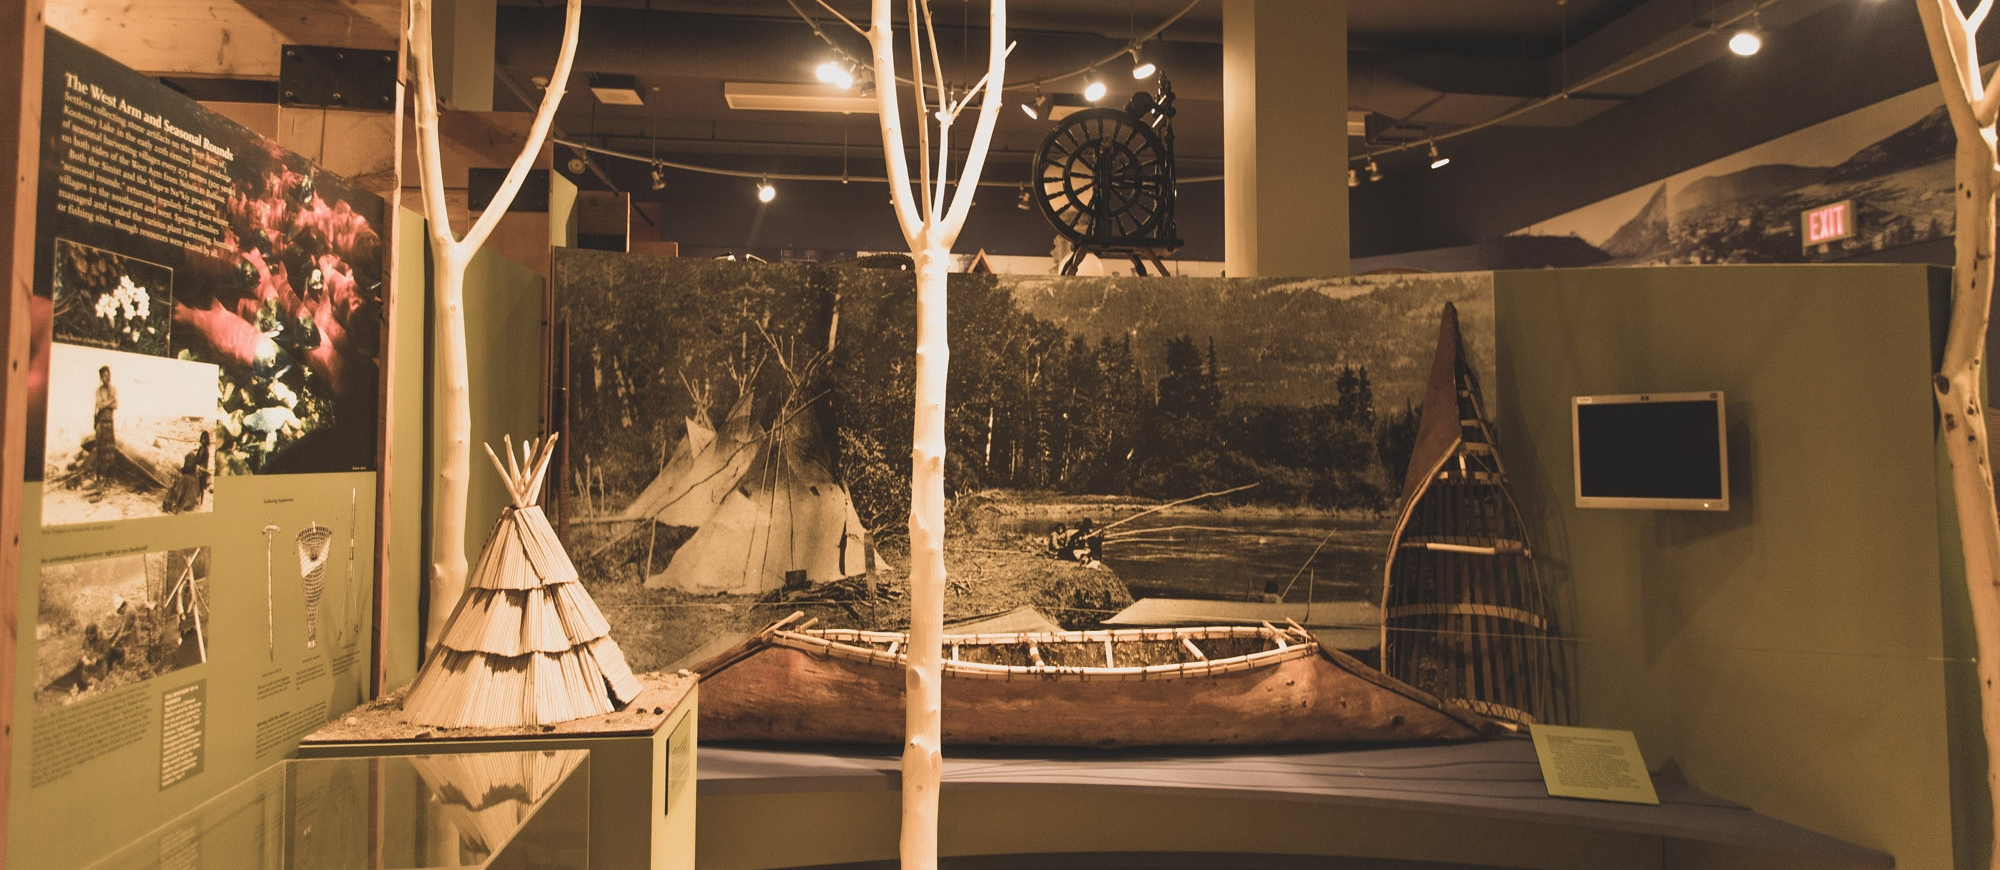 An exhibit in Touchstone Nelson Museum of Art and History showing some indigenous history of the region.